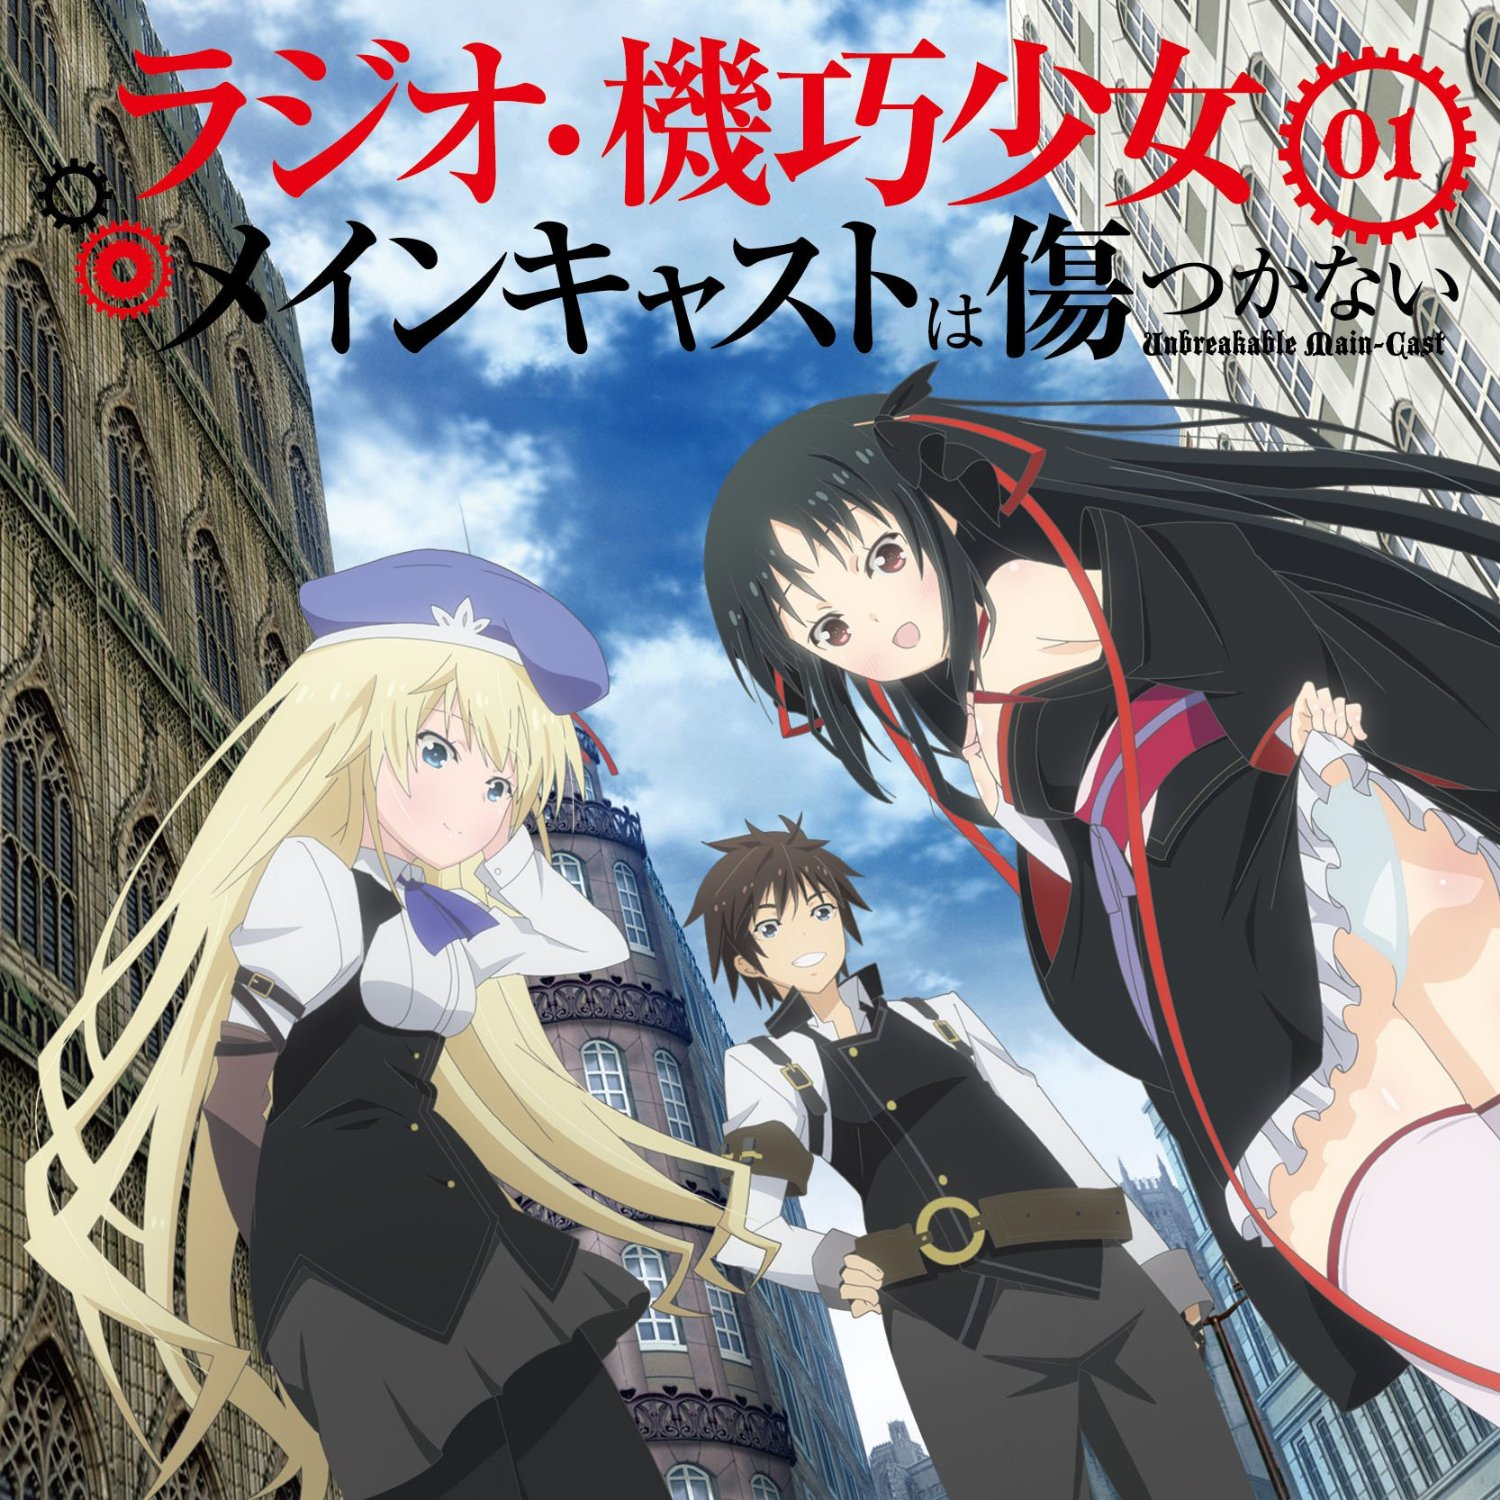 image unbreakable machine doll main cast radio vol 1 cover jpg